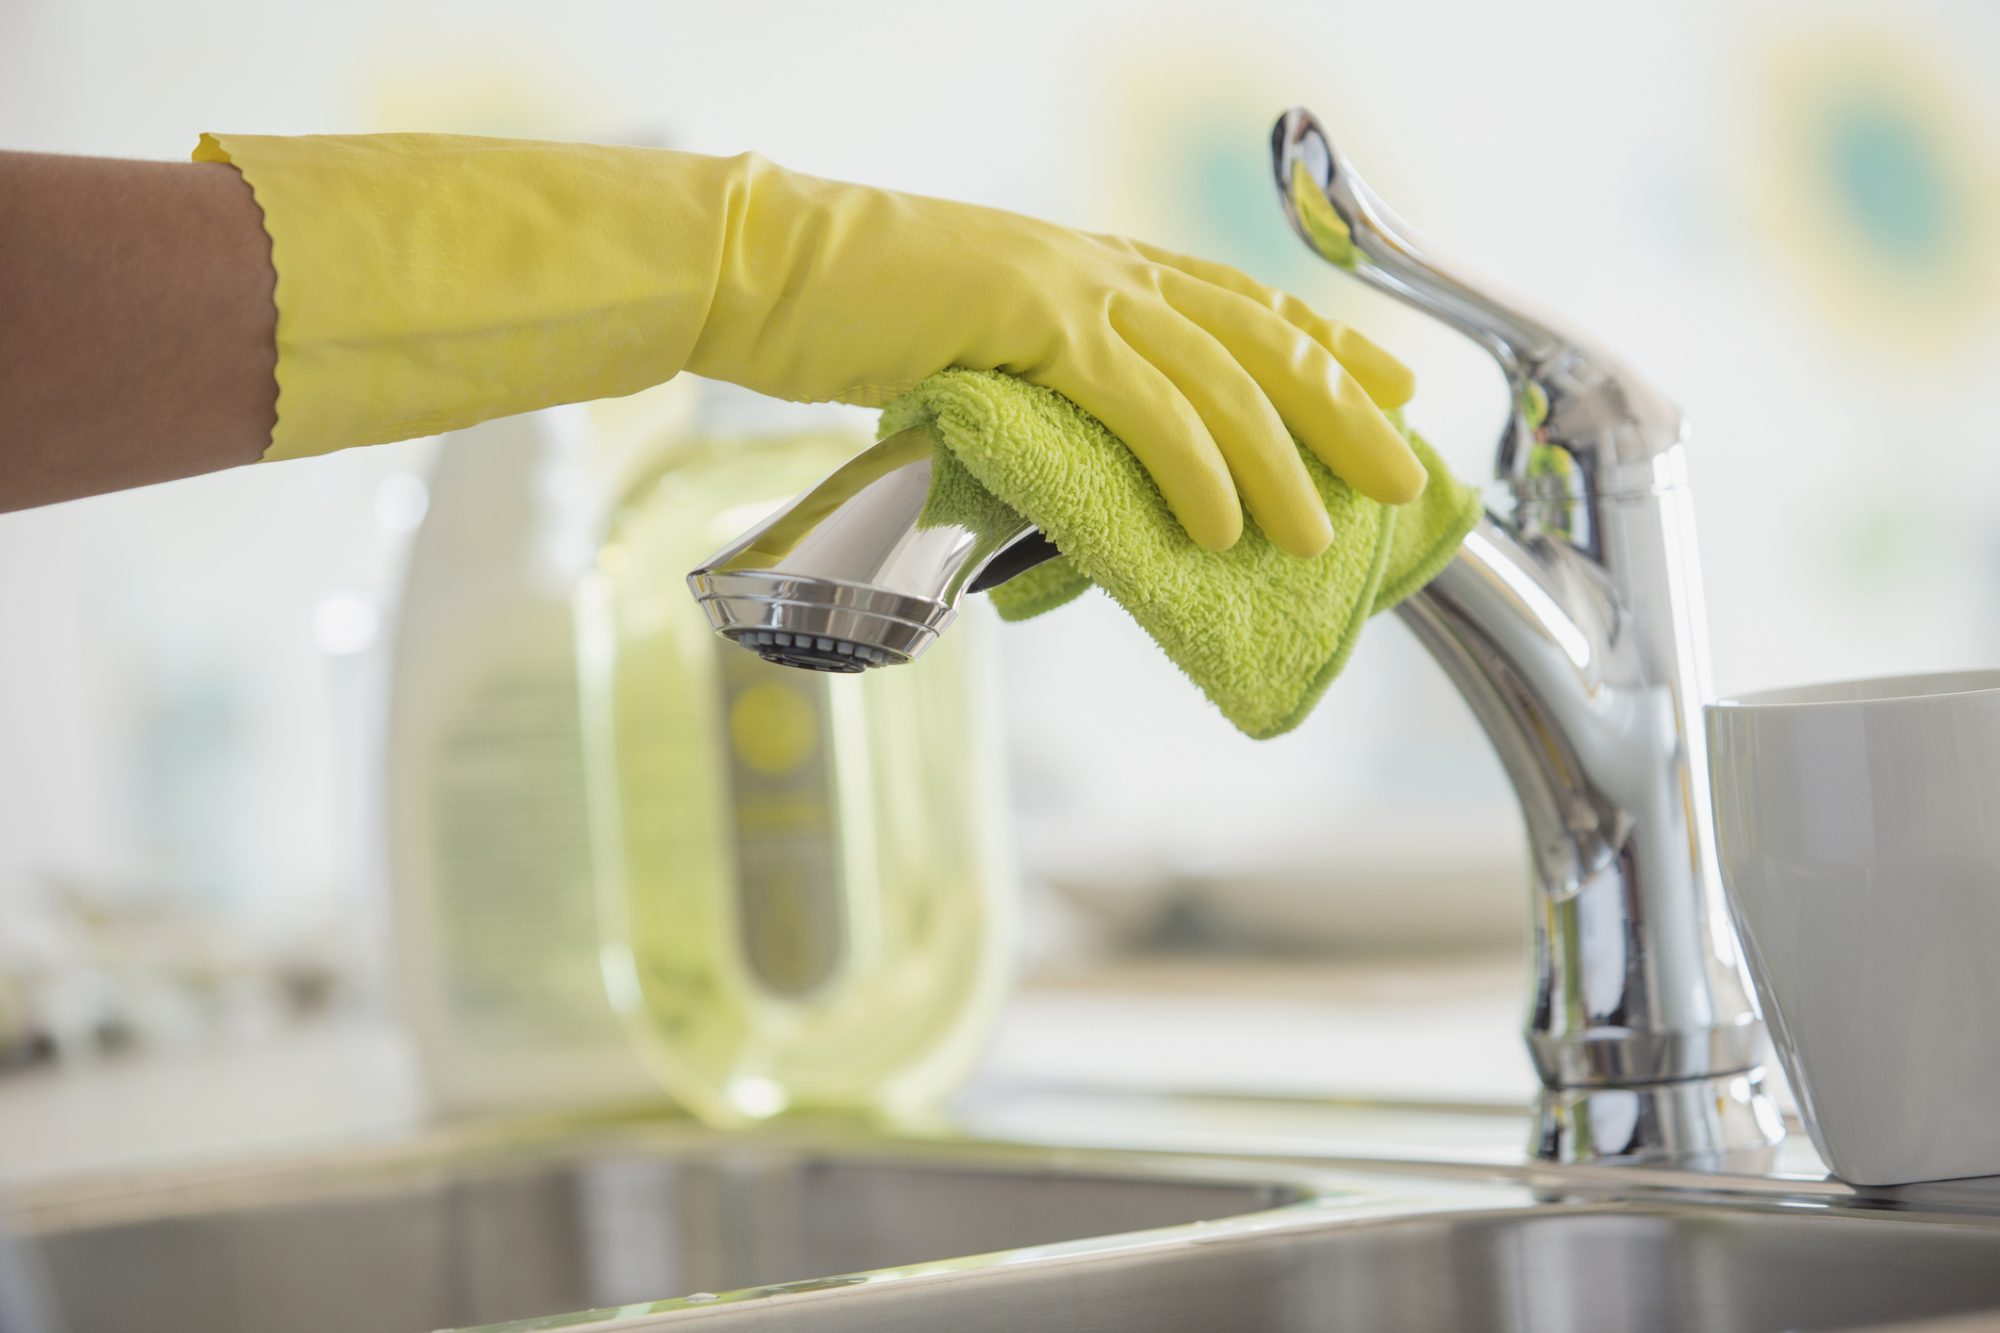 getty-kitchen-cleaning-image